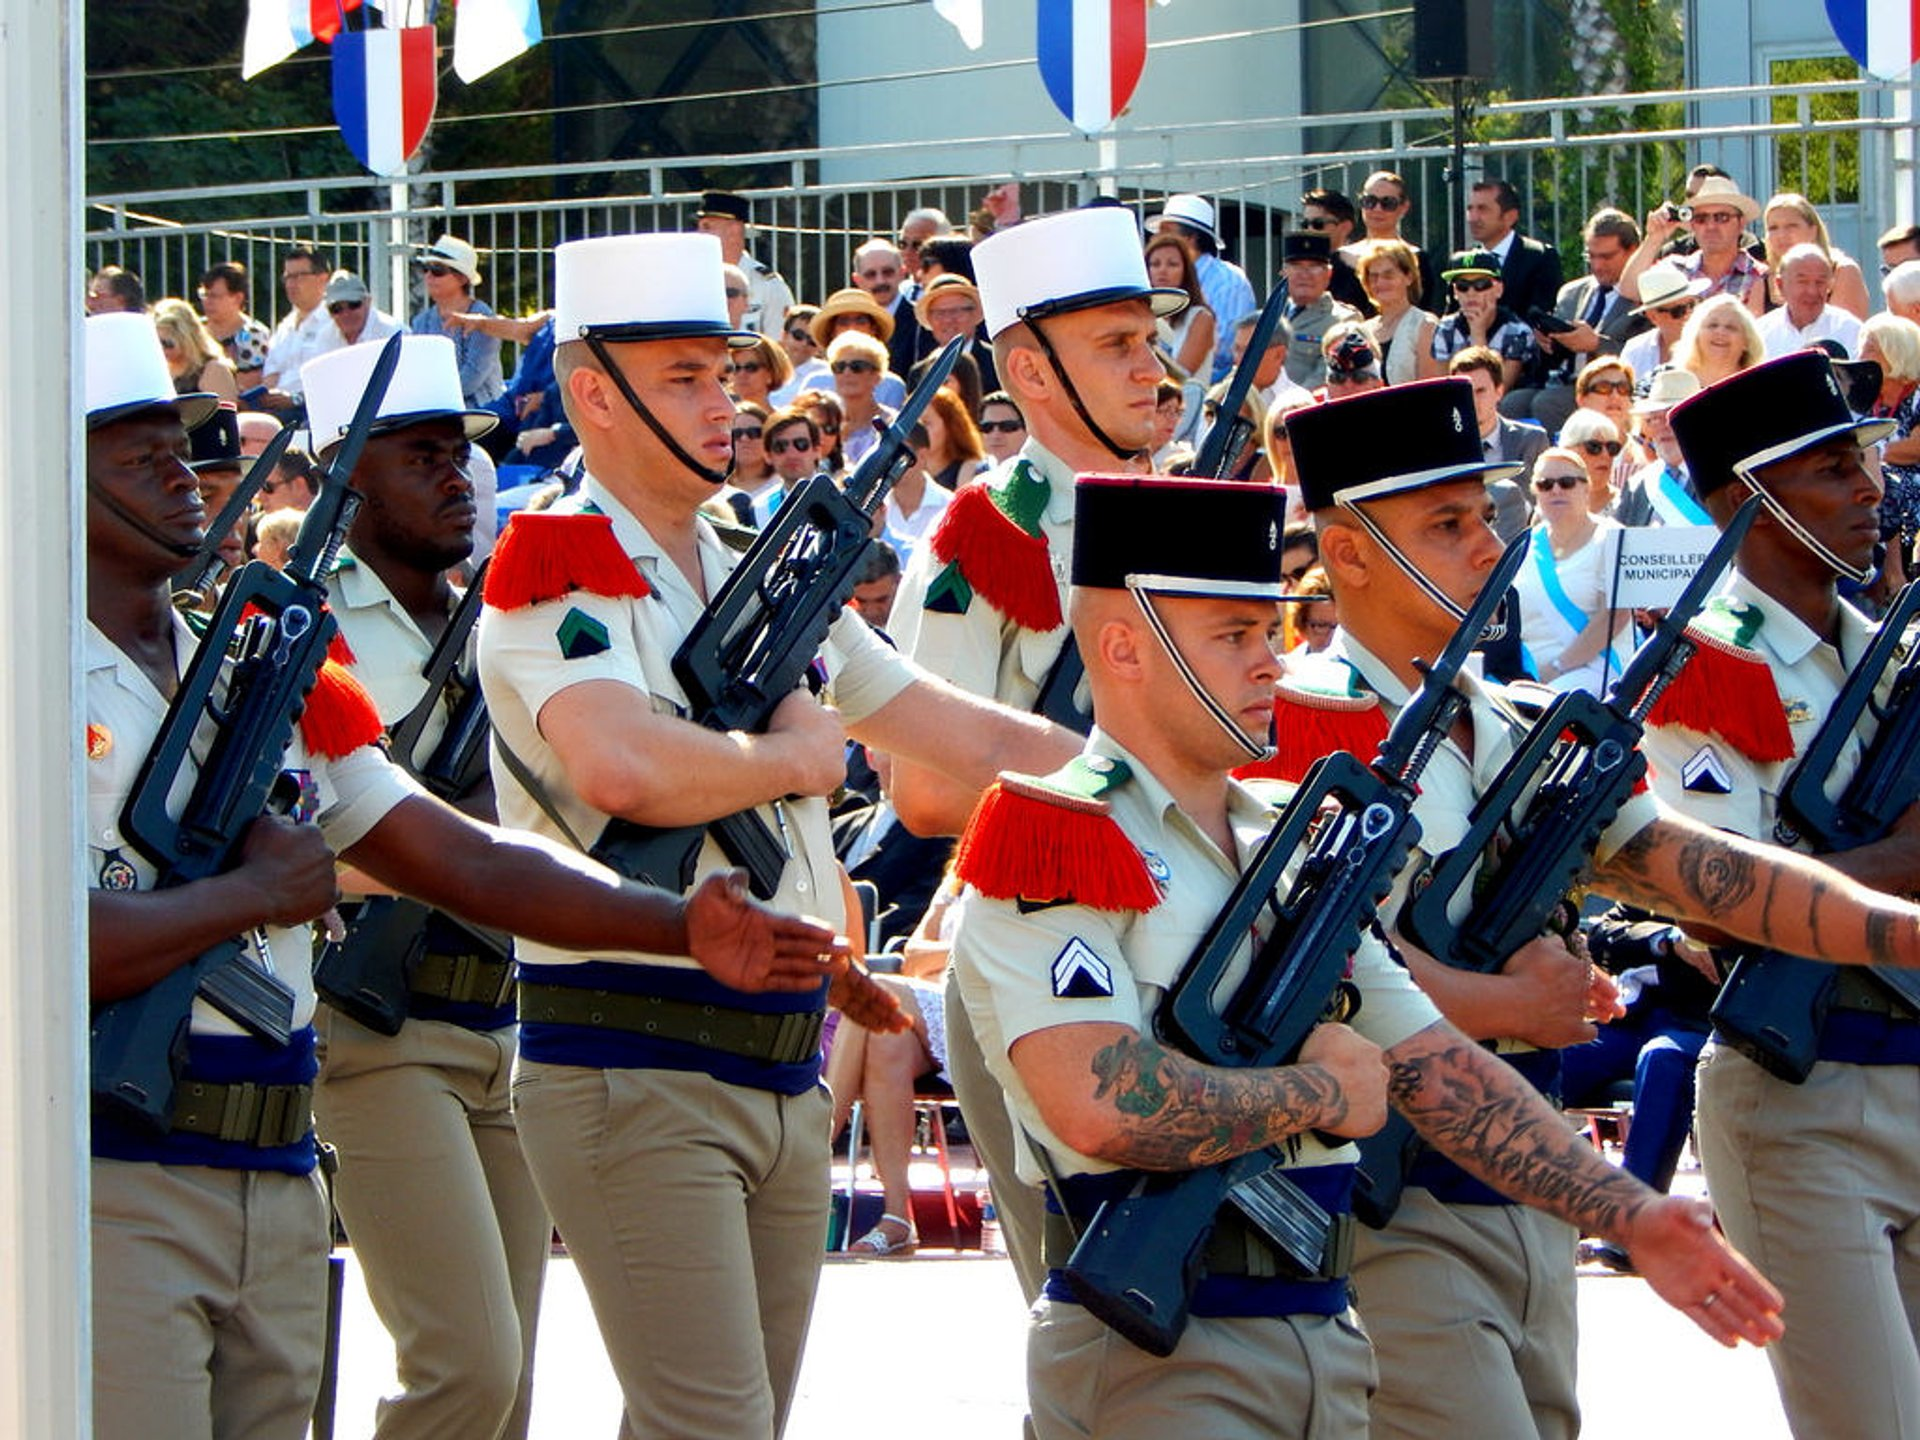 Bastille Day in Marseille, France 2020